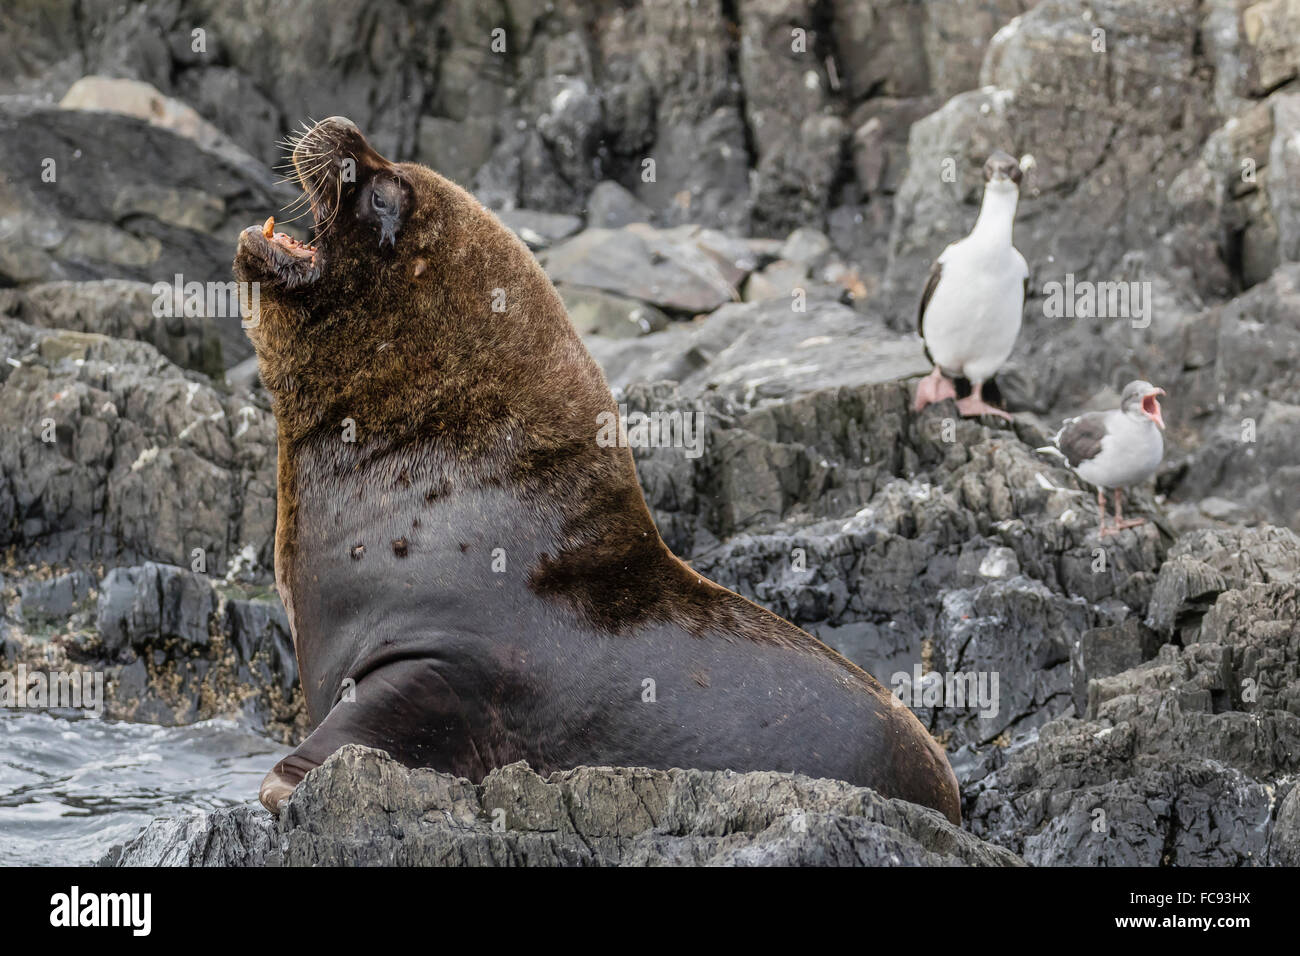 South American sea lion bull (Otaria flavescens) at breeding colony just outside Ushuaia, Beagle Channel, Argentina - Stock Image